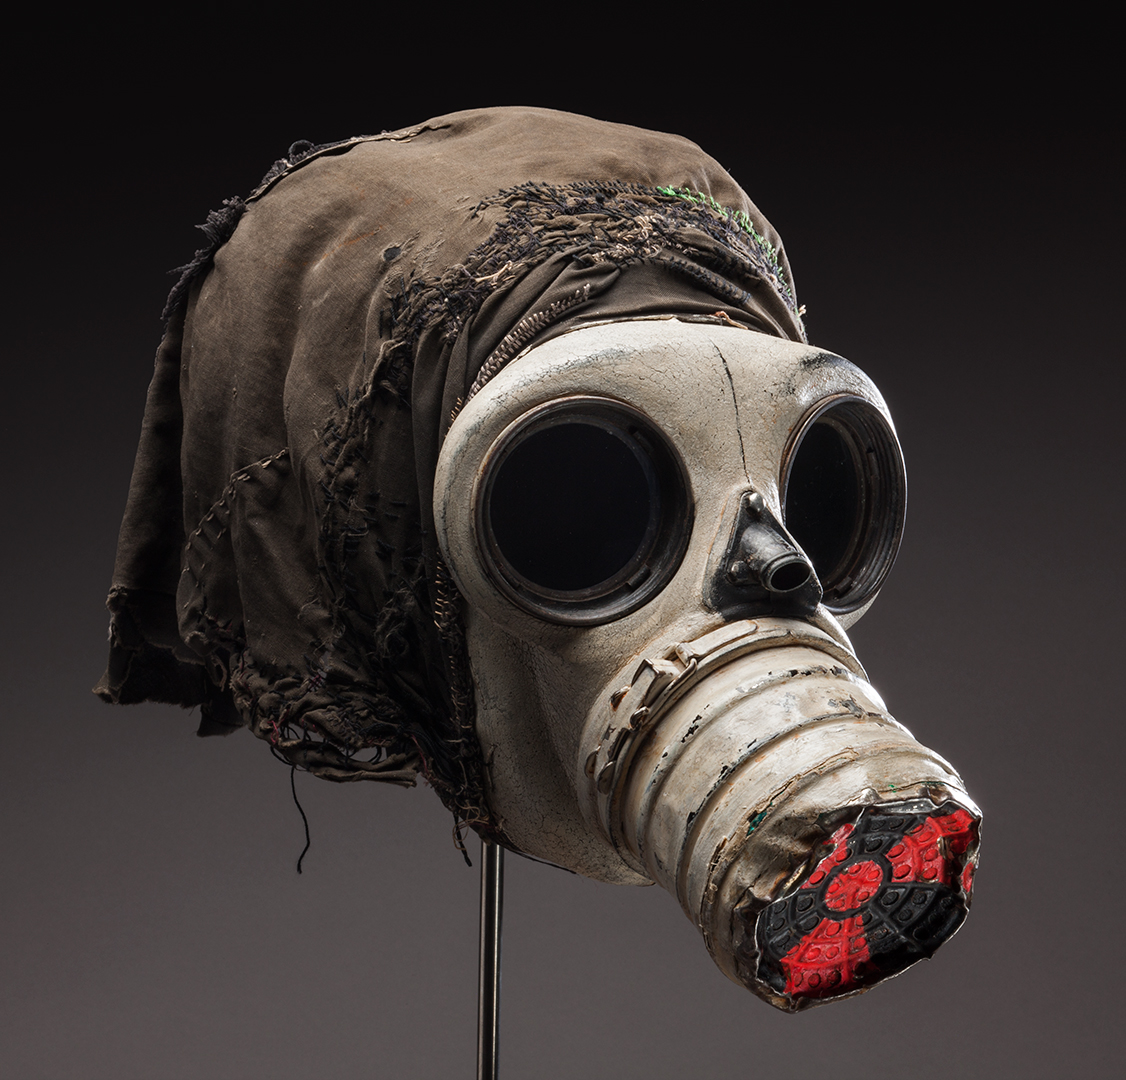 Gas mask with black cloth attached to the back and the international symbol for radiation painted in red on the nose cone